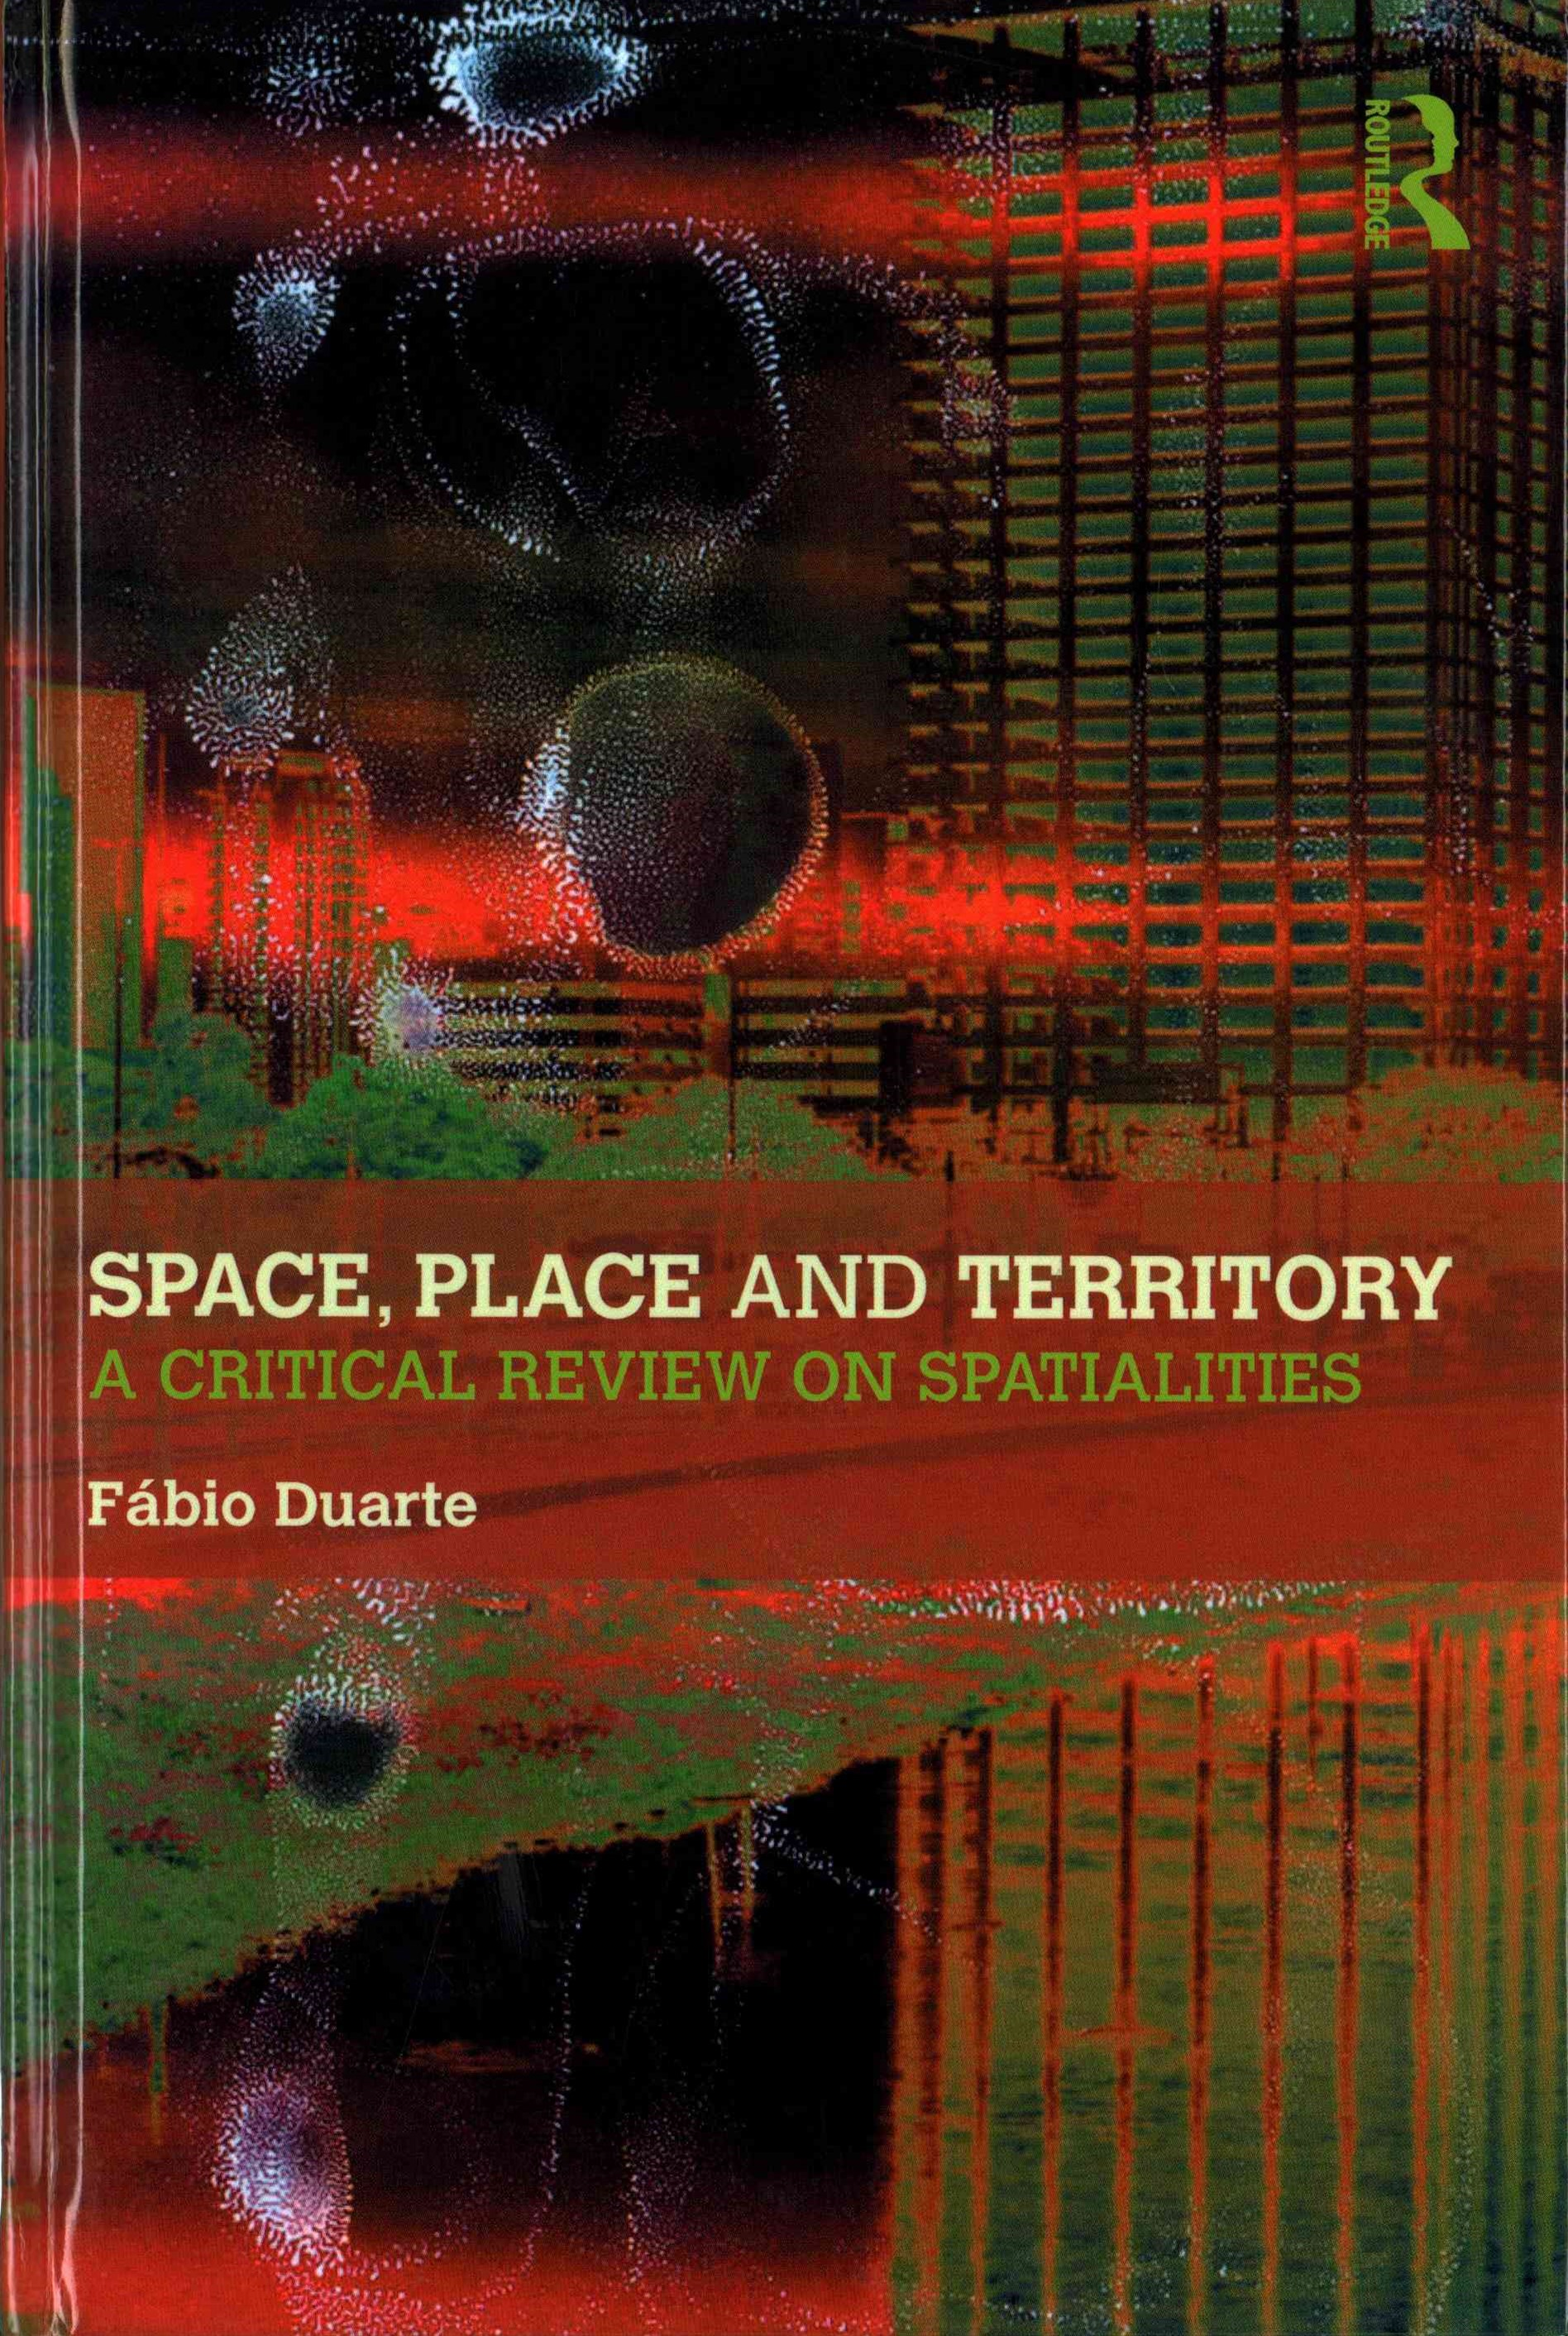 Space, Place, and Territory